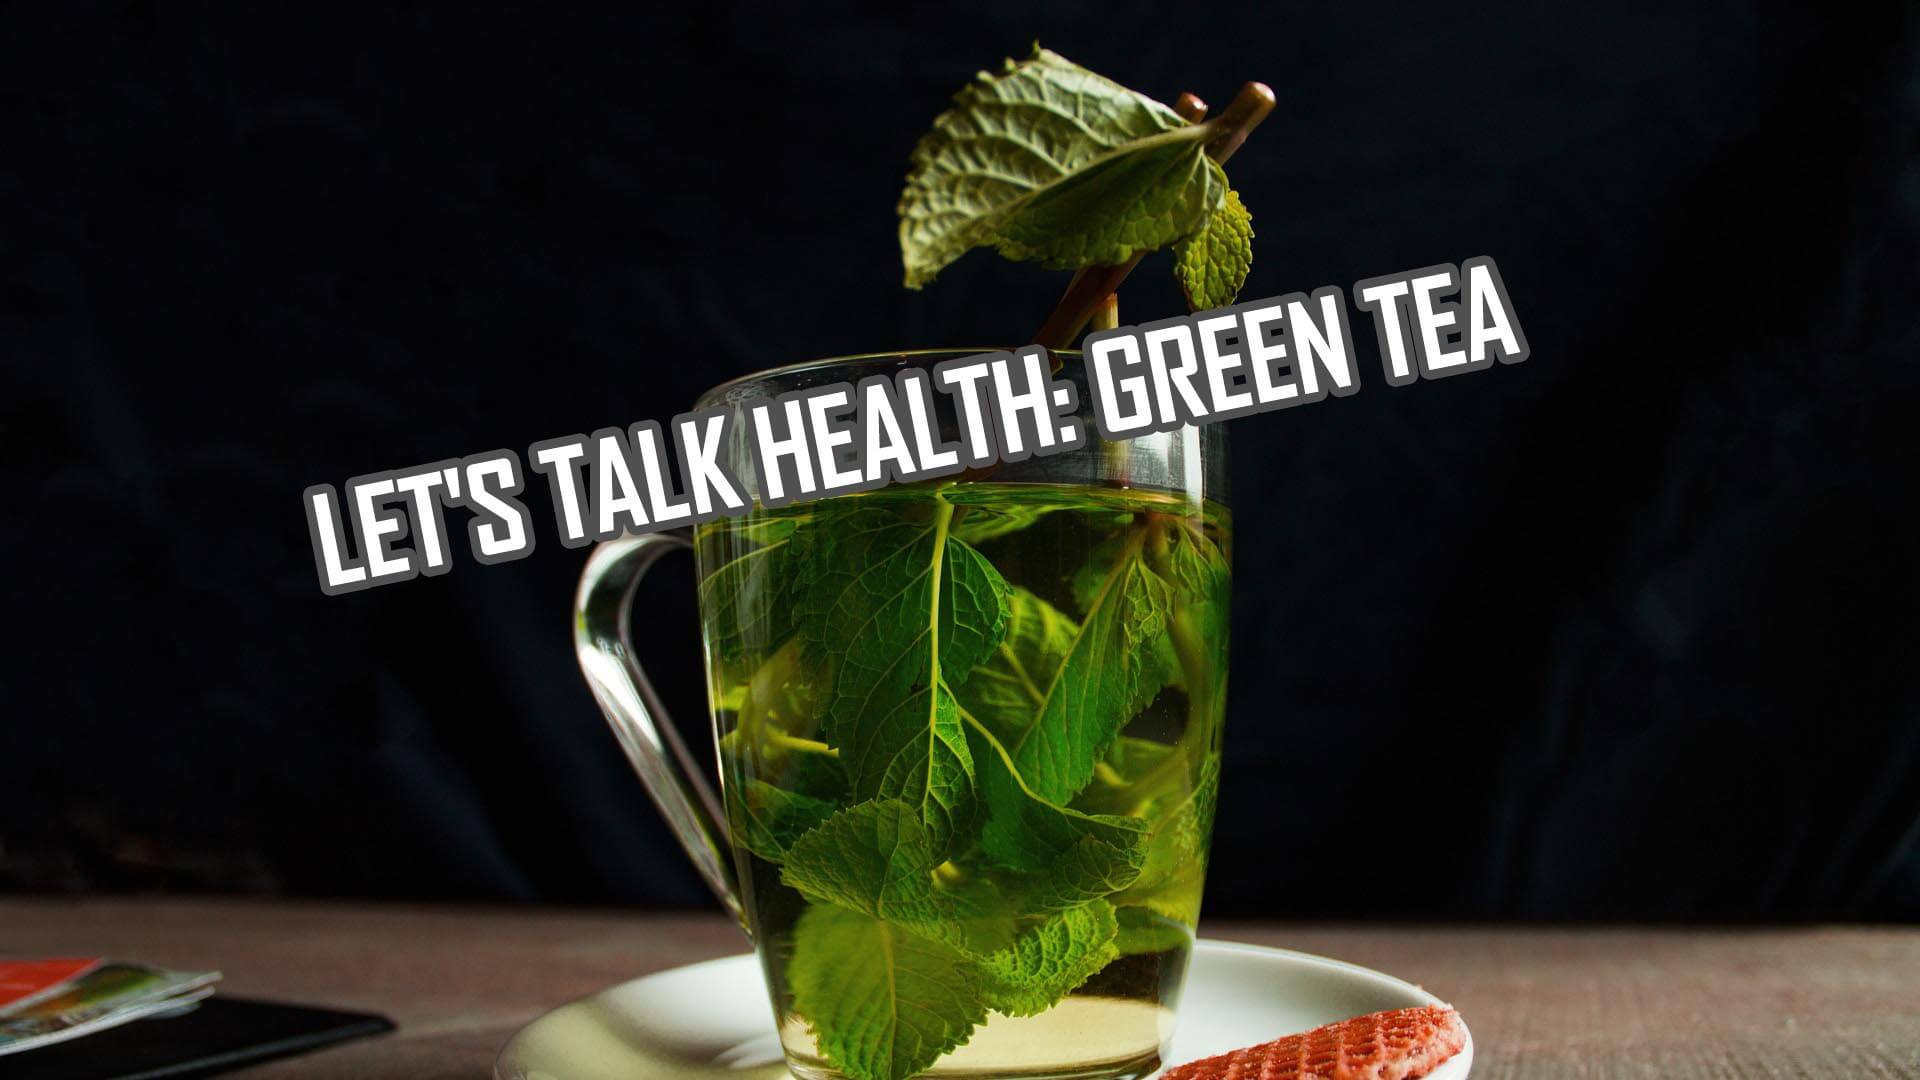 Let's Talk Health: Green Tea Health Benefits